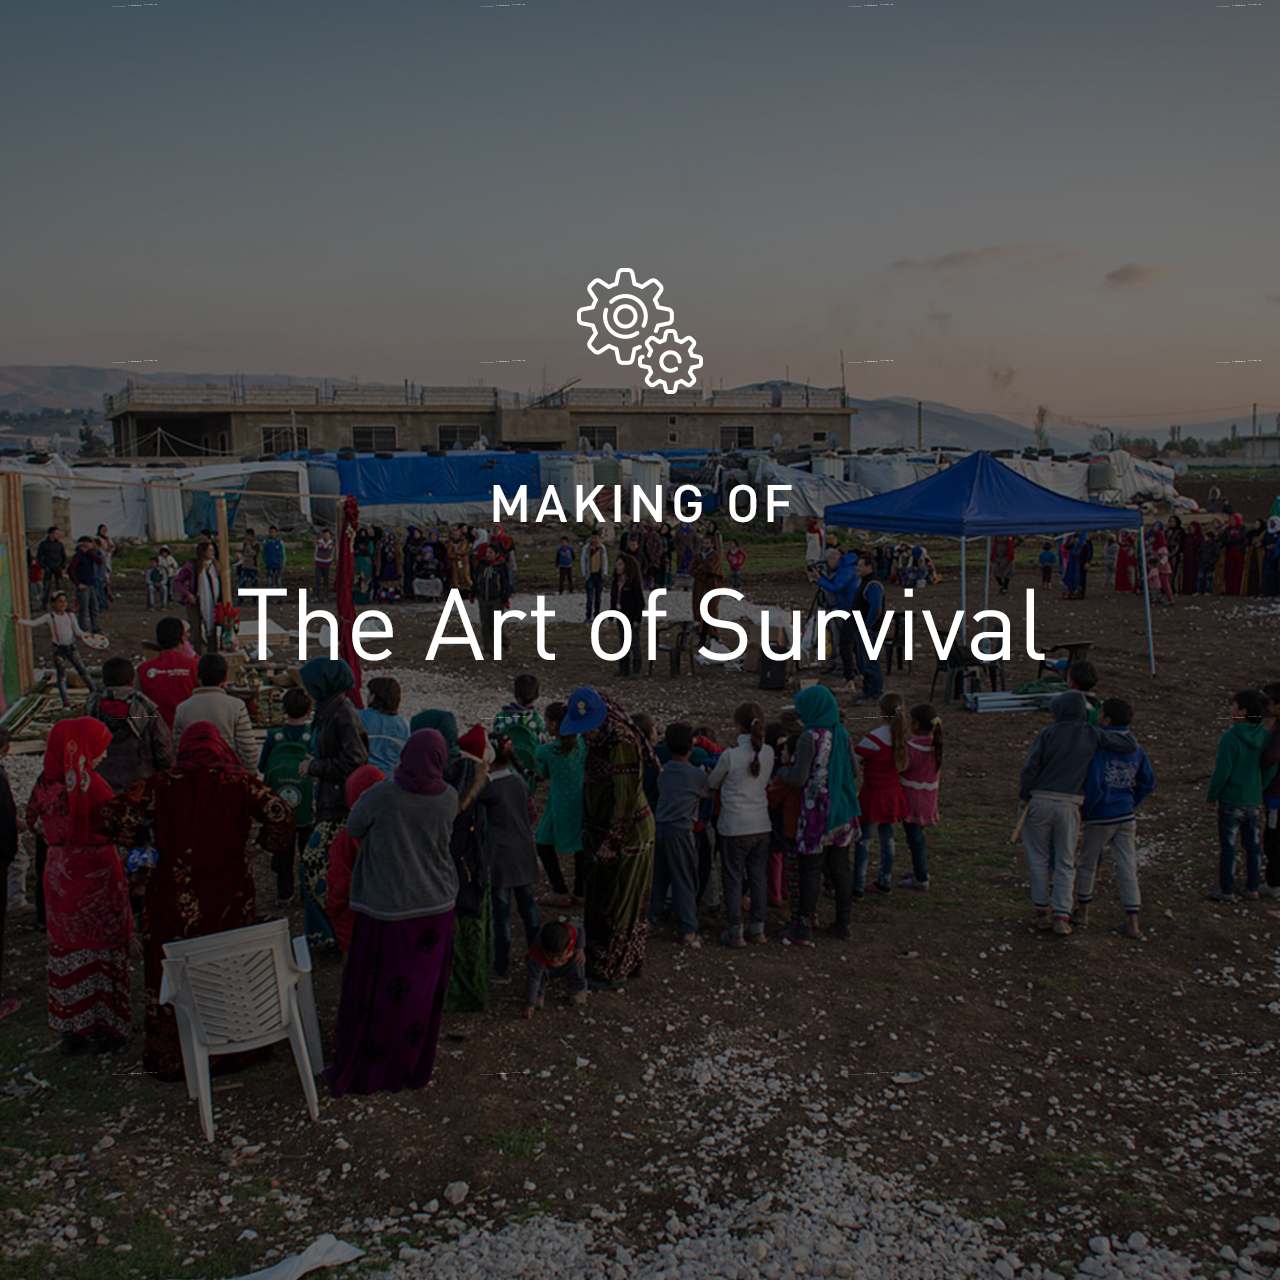 new_c_The Art of Survival - Making of